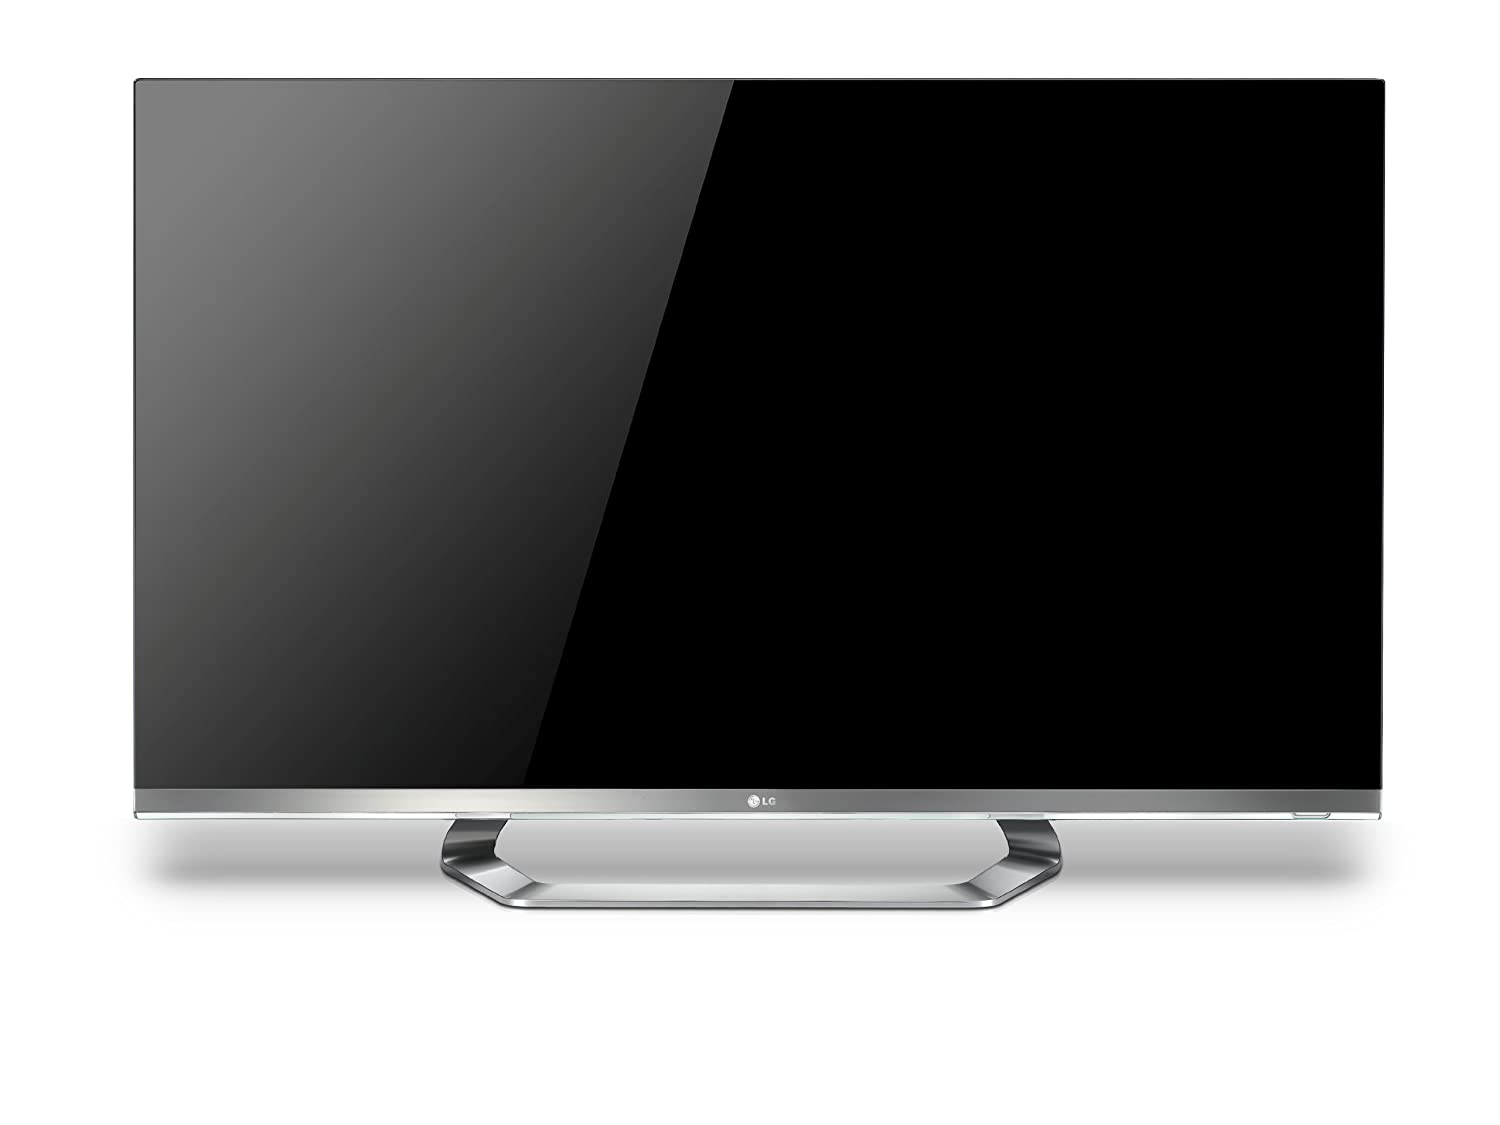 LG-Cinema-Screen-47LM8600-47-Inch-Cinema-3D-1080p-240Hz-Dual-Core-LED-LCD-HDTV-with-Smart-TV-and-Six-Pairs-of-3D-Glasses-2012-Model-